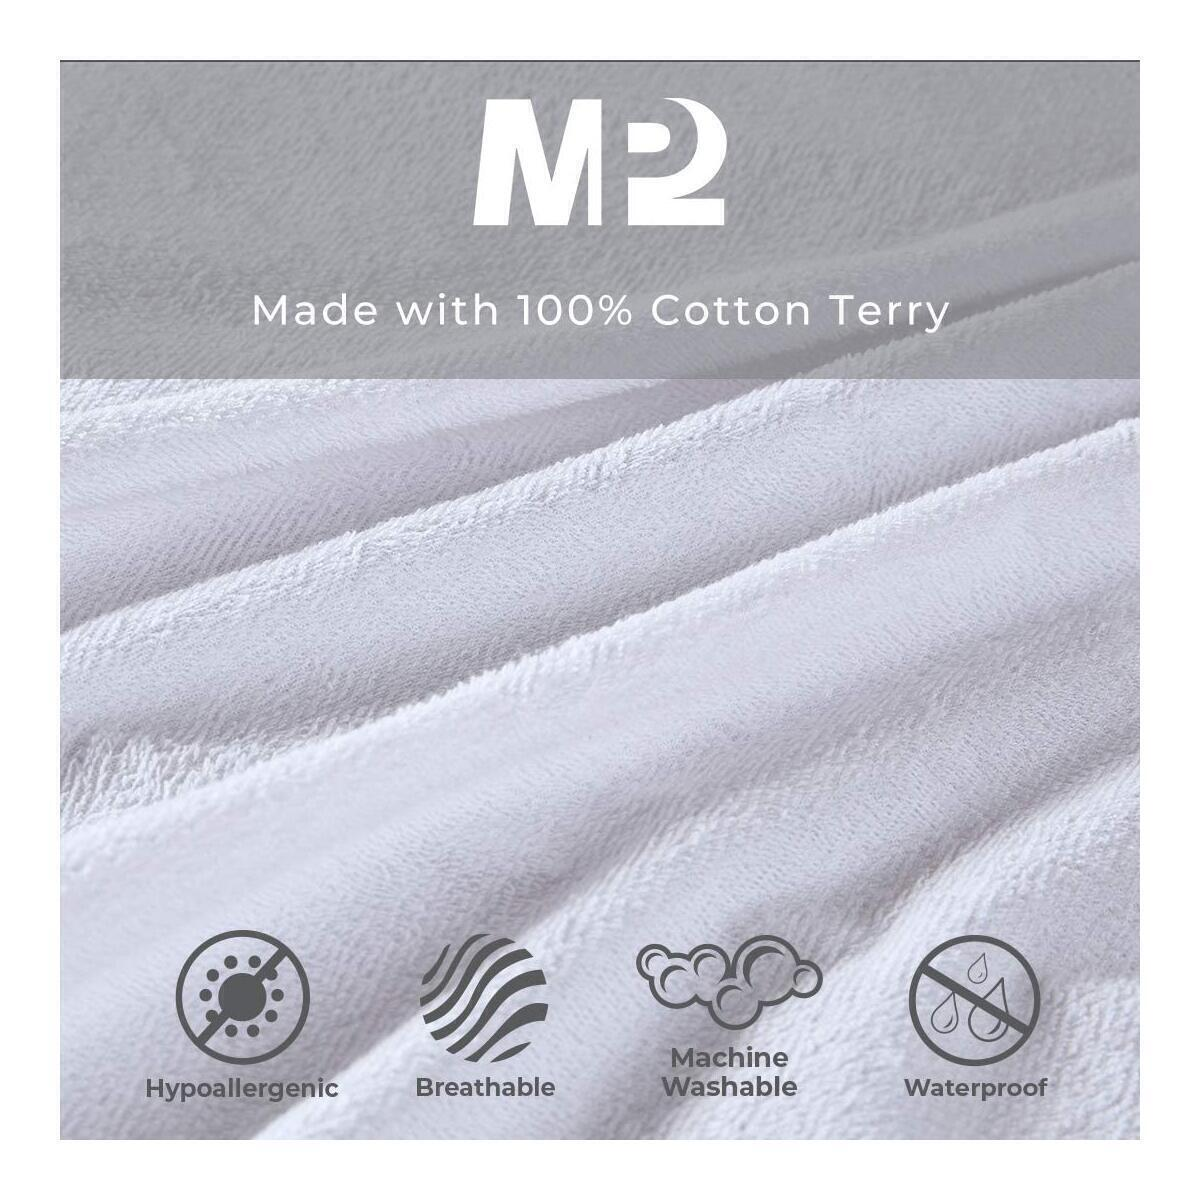 Twin Size Bed Mattress Cover Waterproof Mattress Protector, Breathable Cooling Cotton Terry Deep Pocket - Fits 4